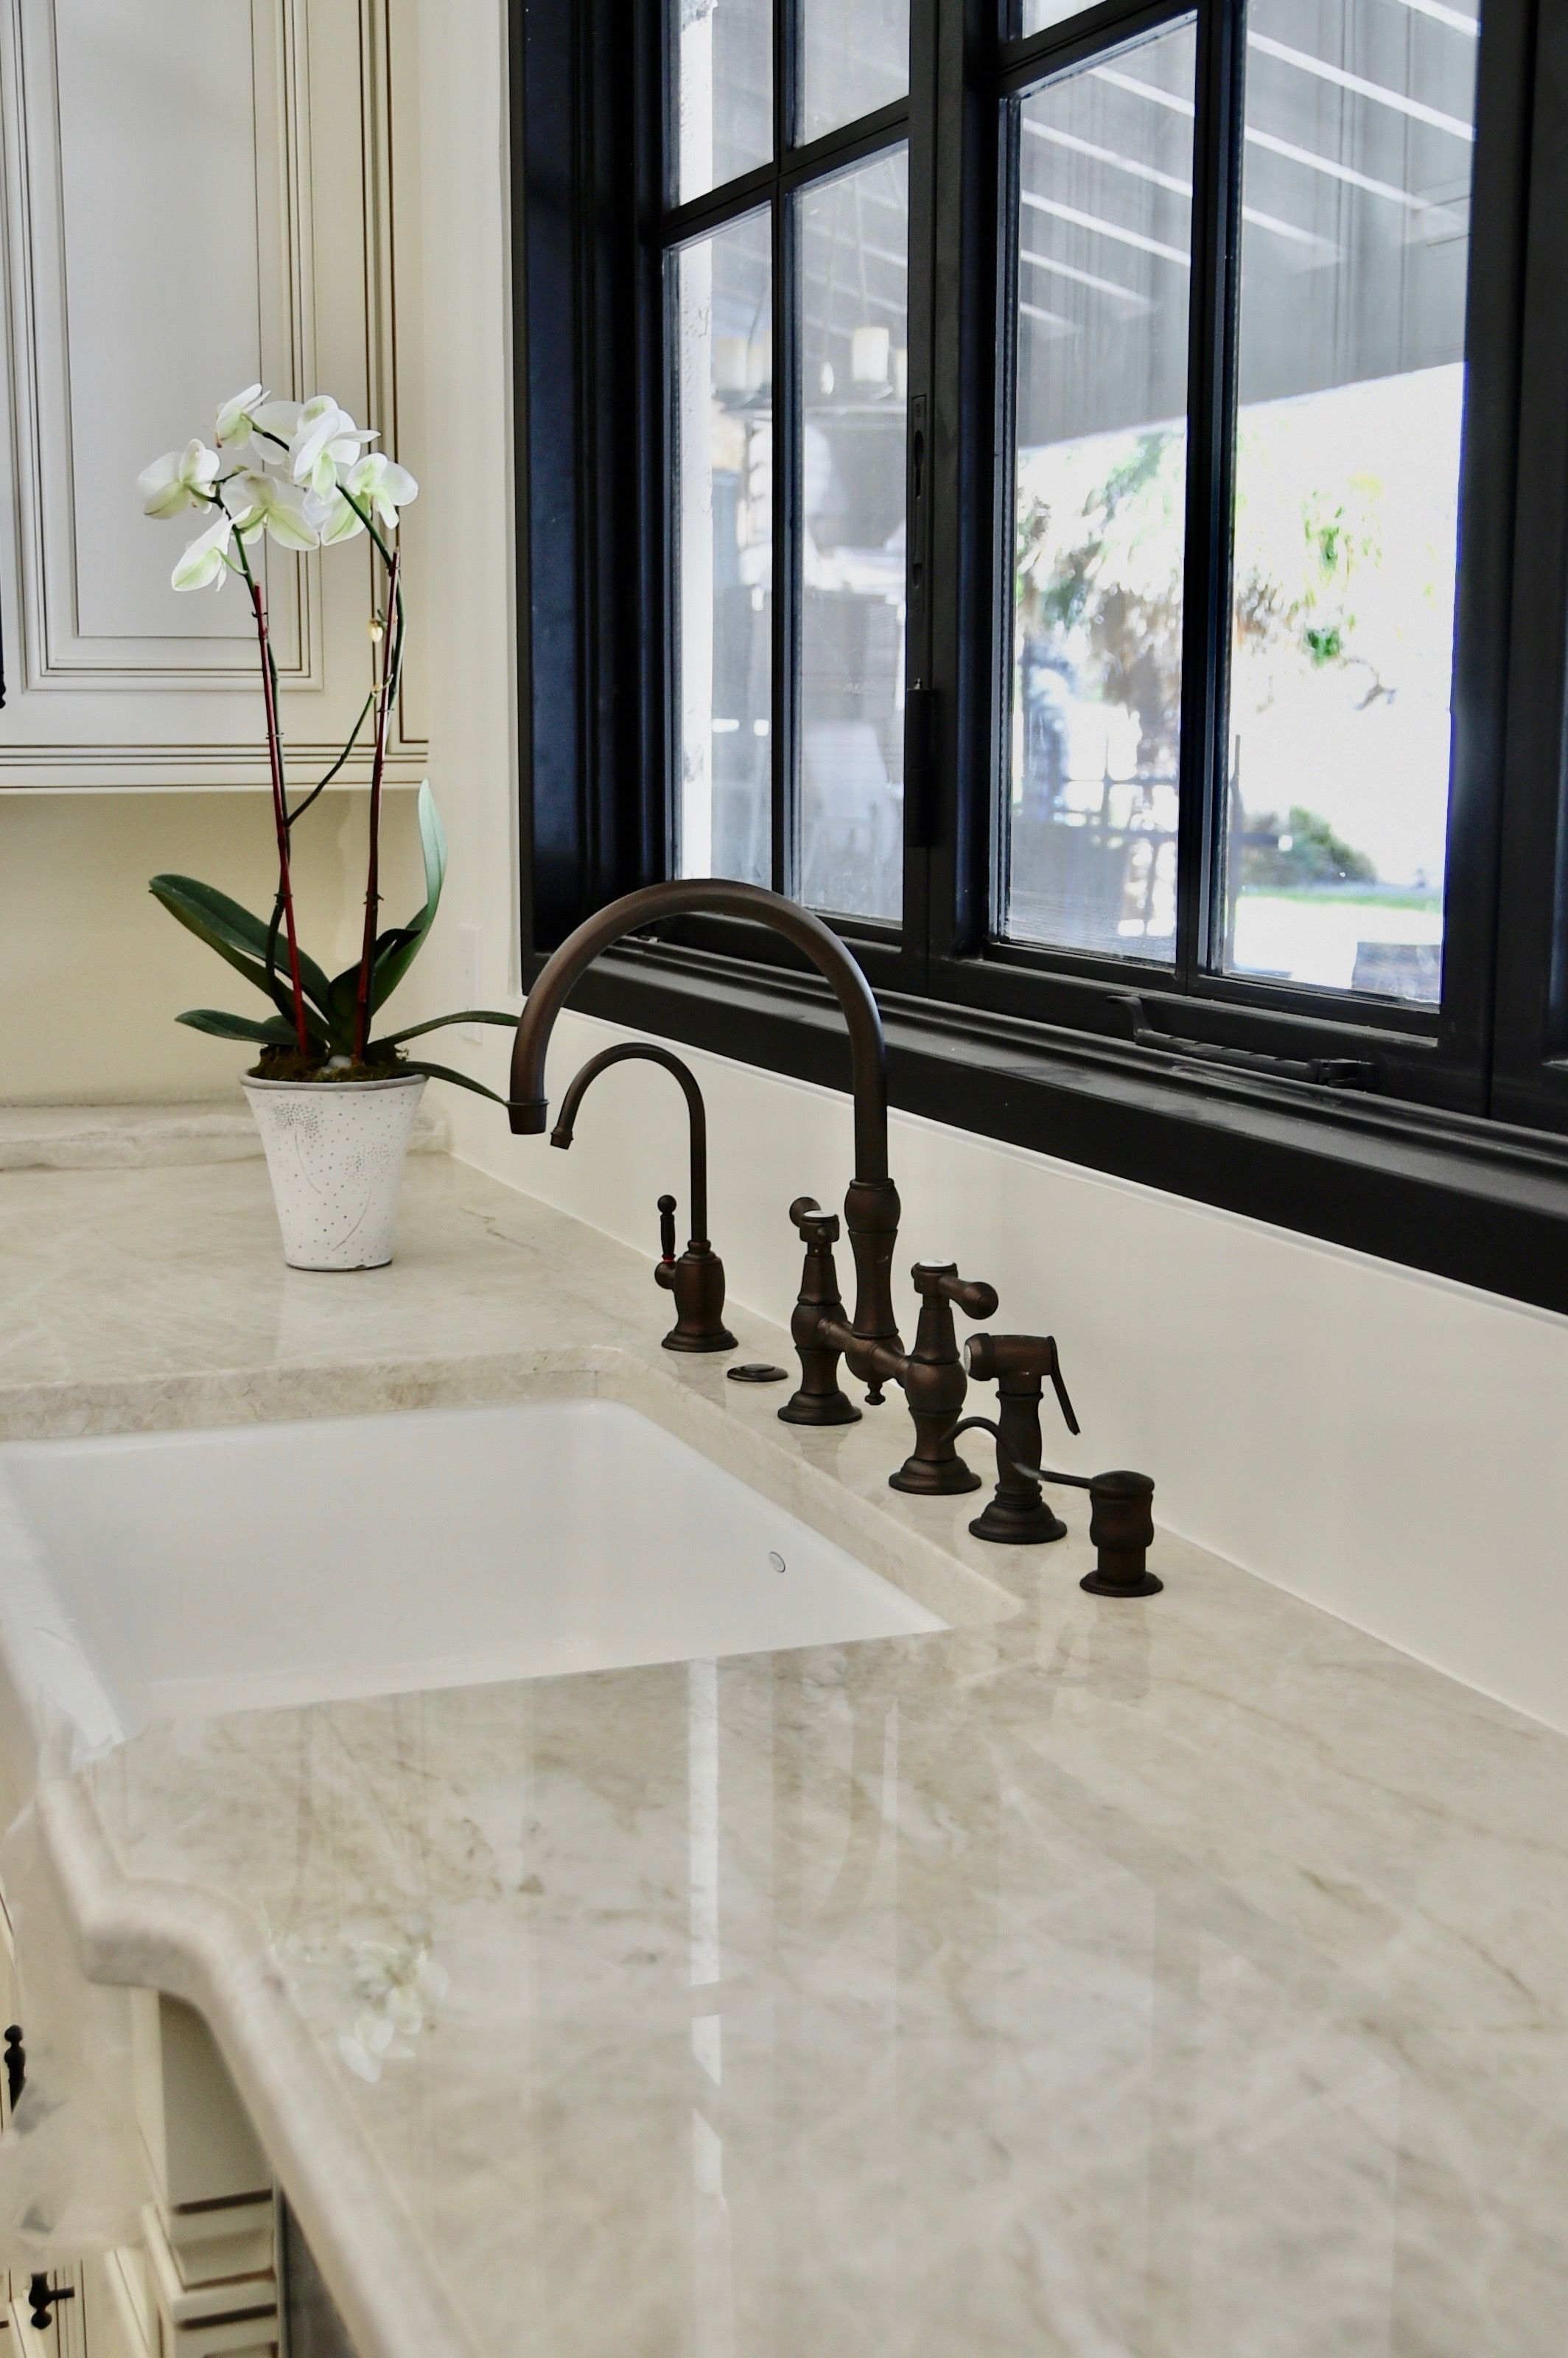 Kitchen window without sill  kitchen remodel  taj mahal countertops  luxury remodels company